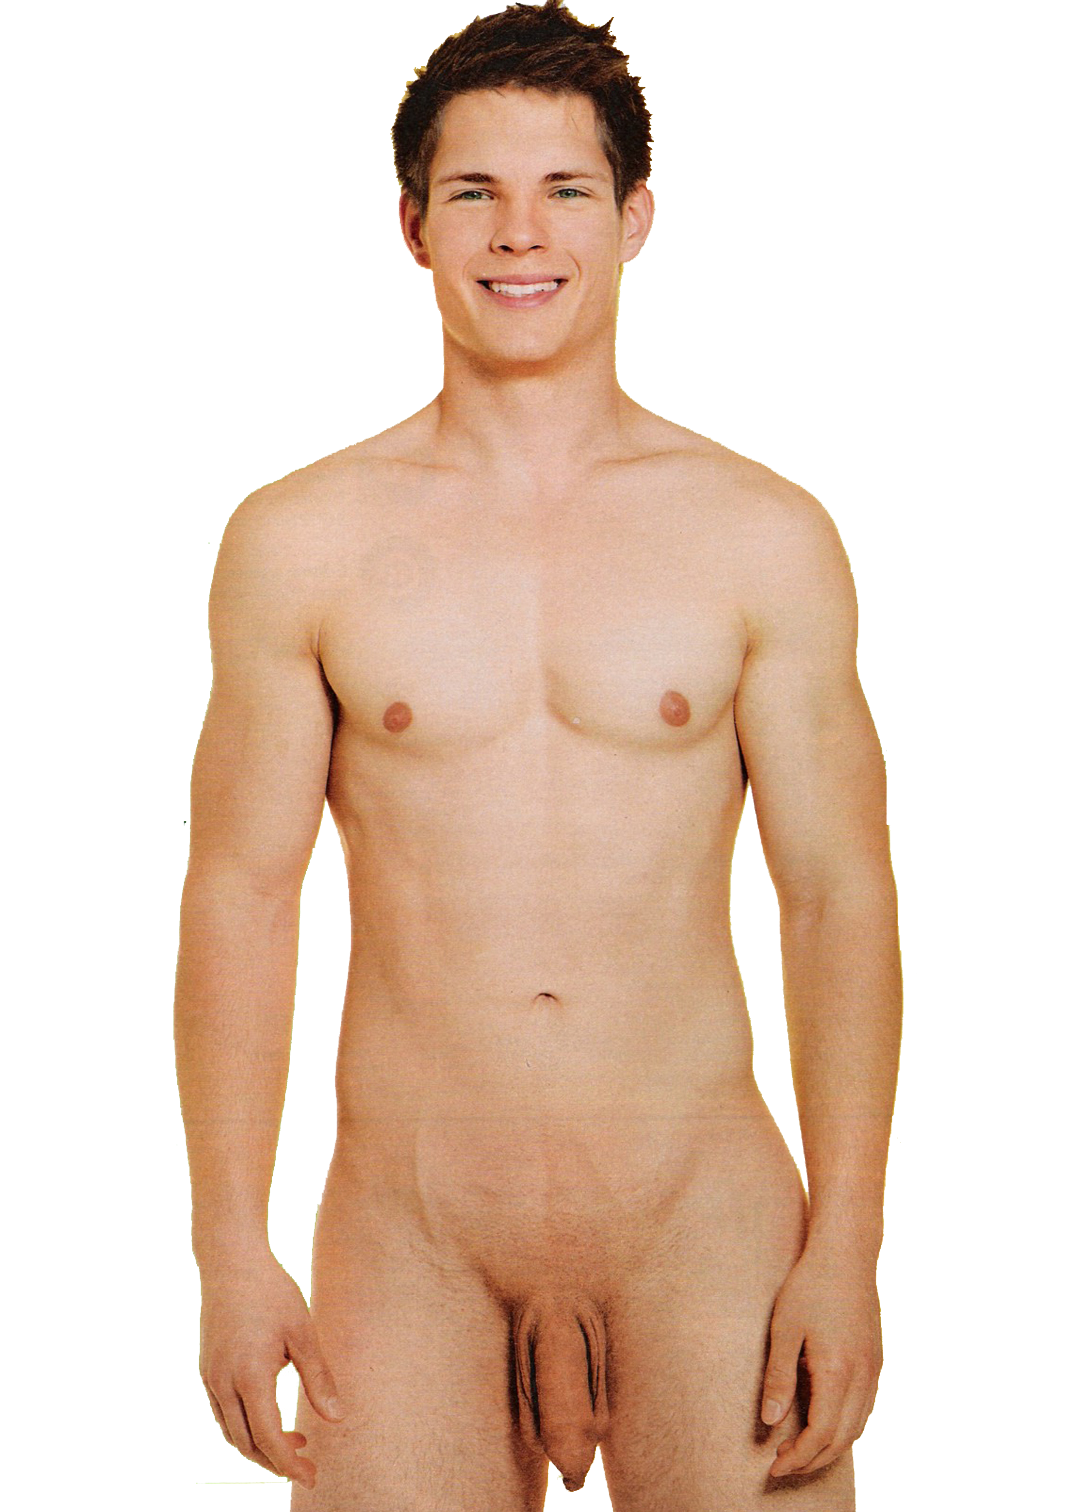 Mainstream Male Frontal Nudity